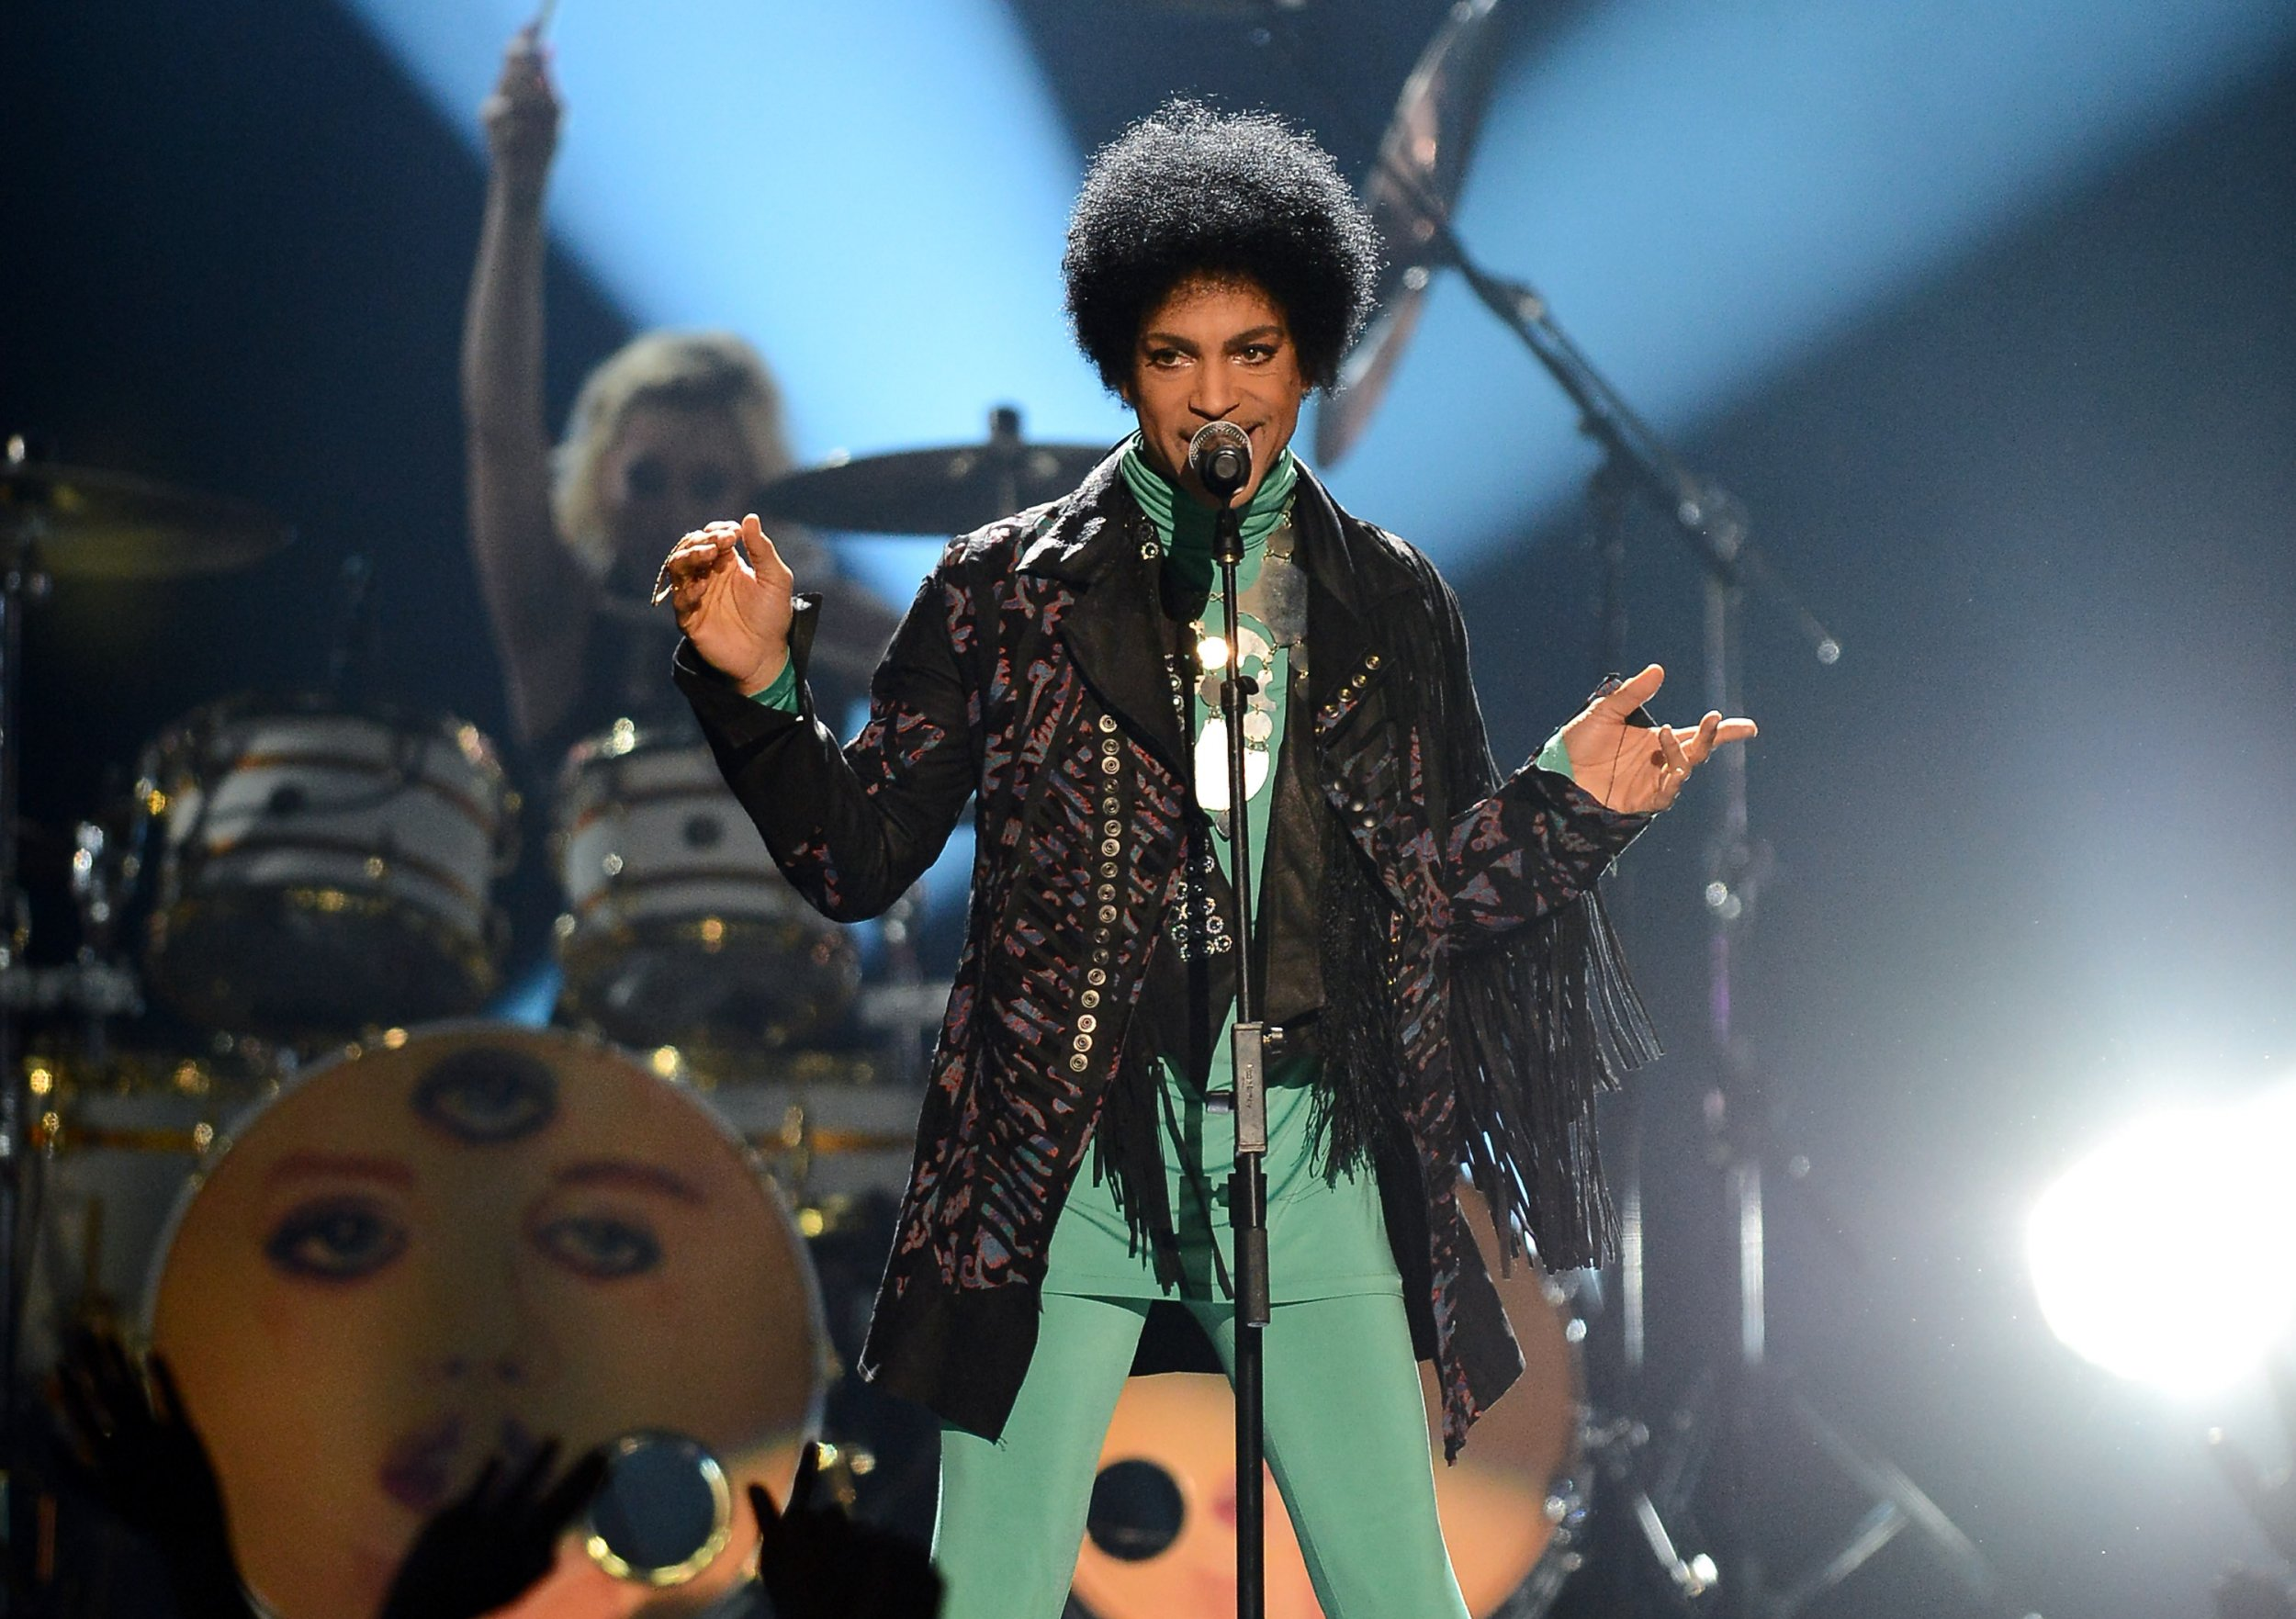 Prince at Billboard Music Awards 2013